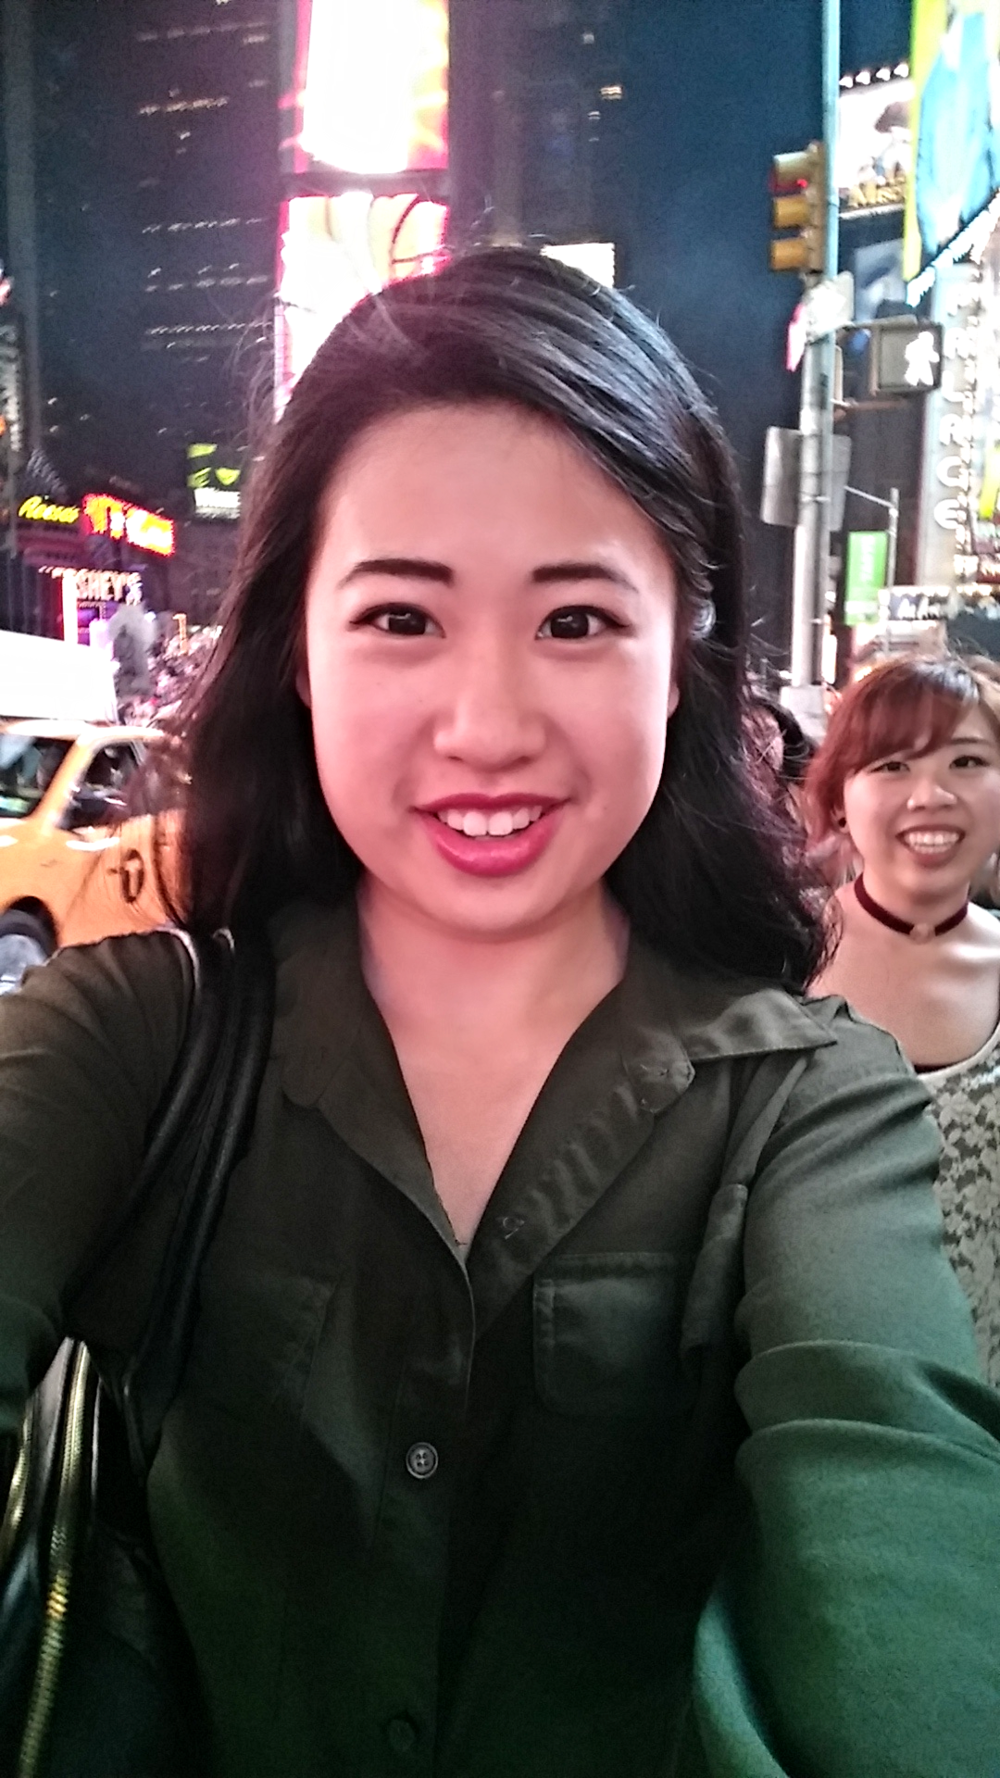 Zerlinda capturing herself in a selfie against the backdrop of the energy and craziness of Times Square in the heart of New York City.